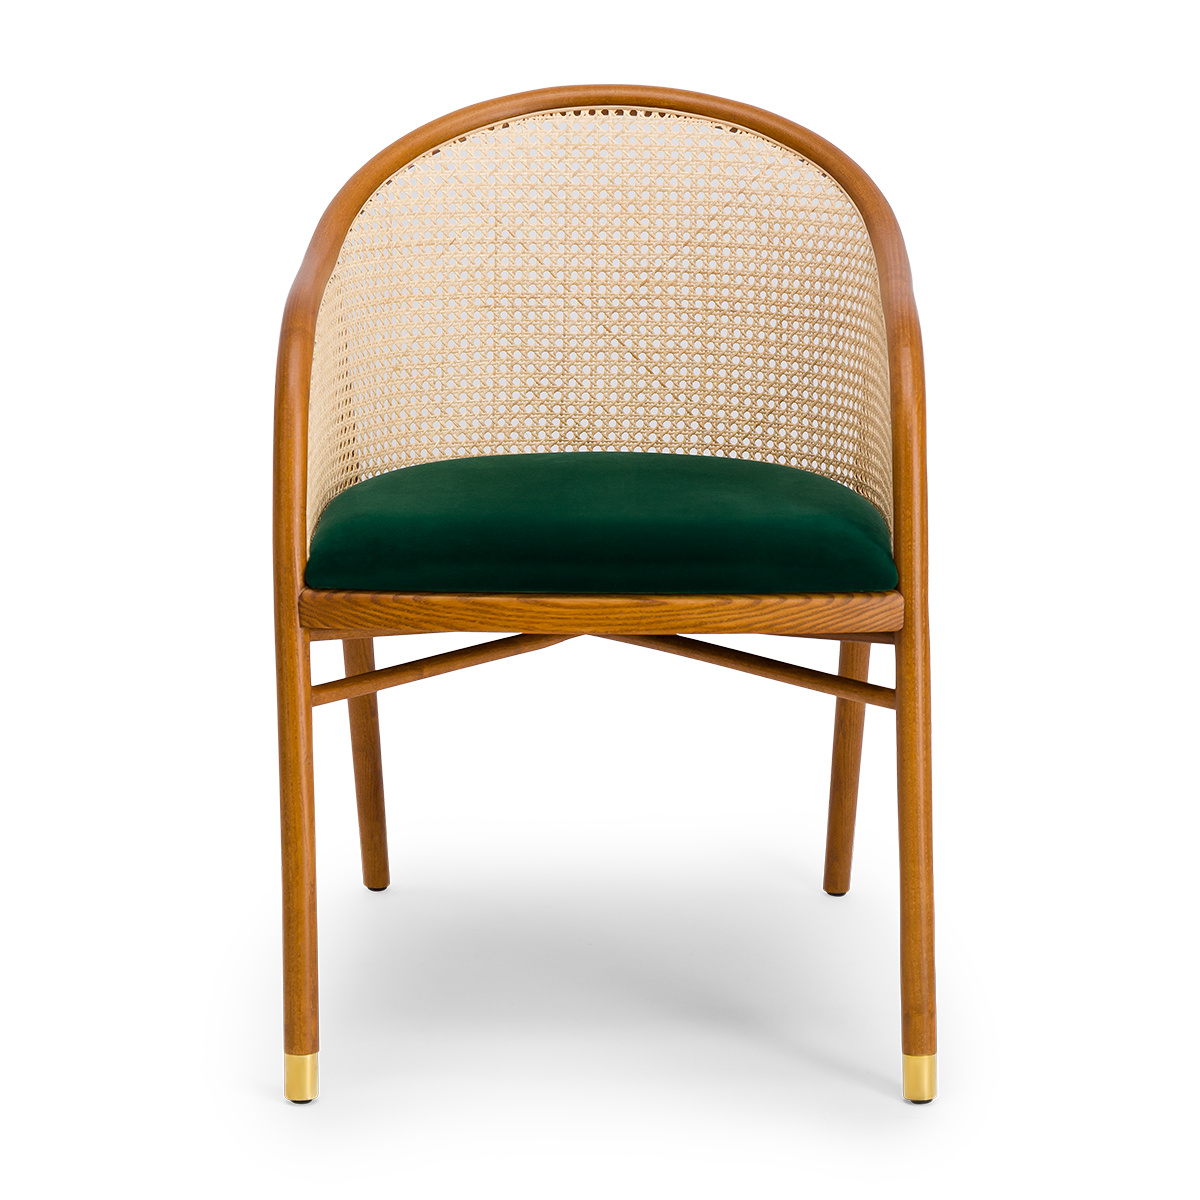 Cavallo Armchair, Fir Green Velvet with Cherrywood Frame